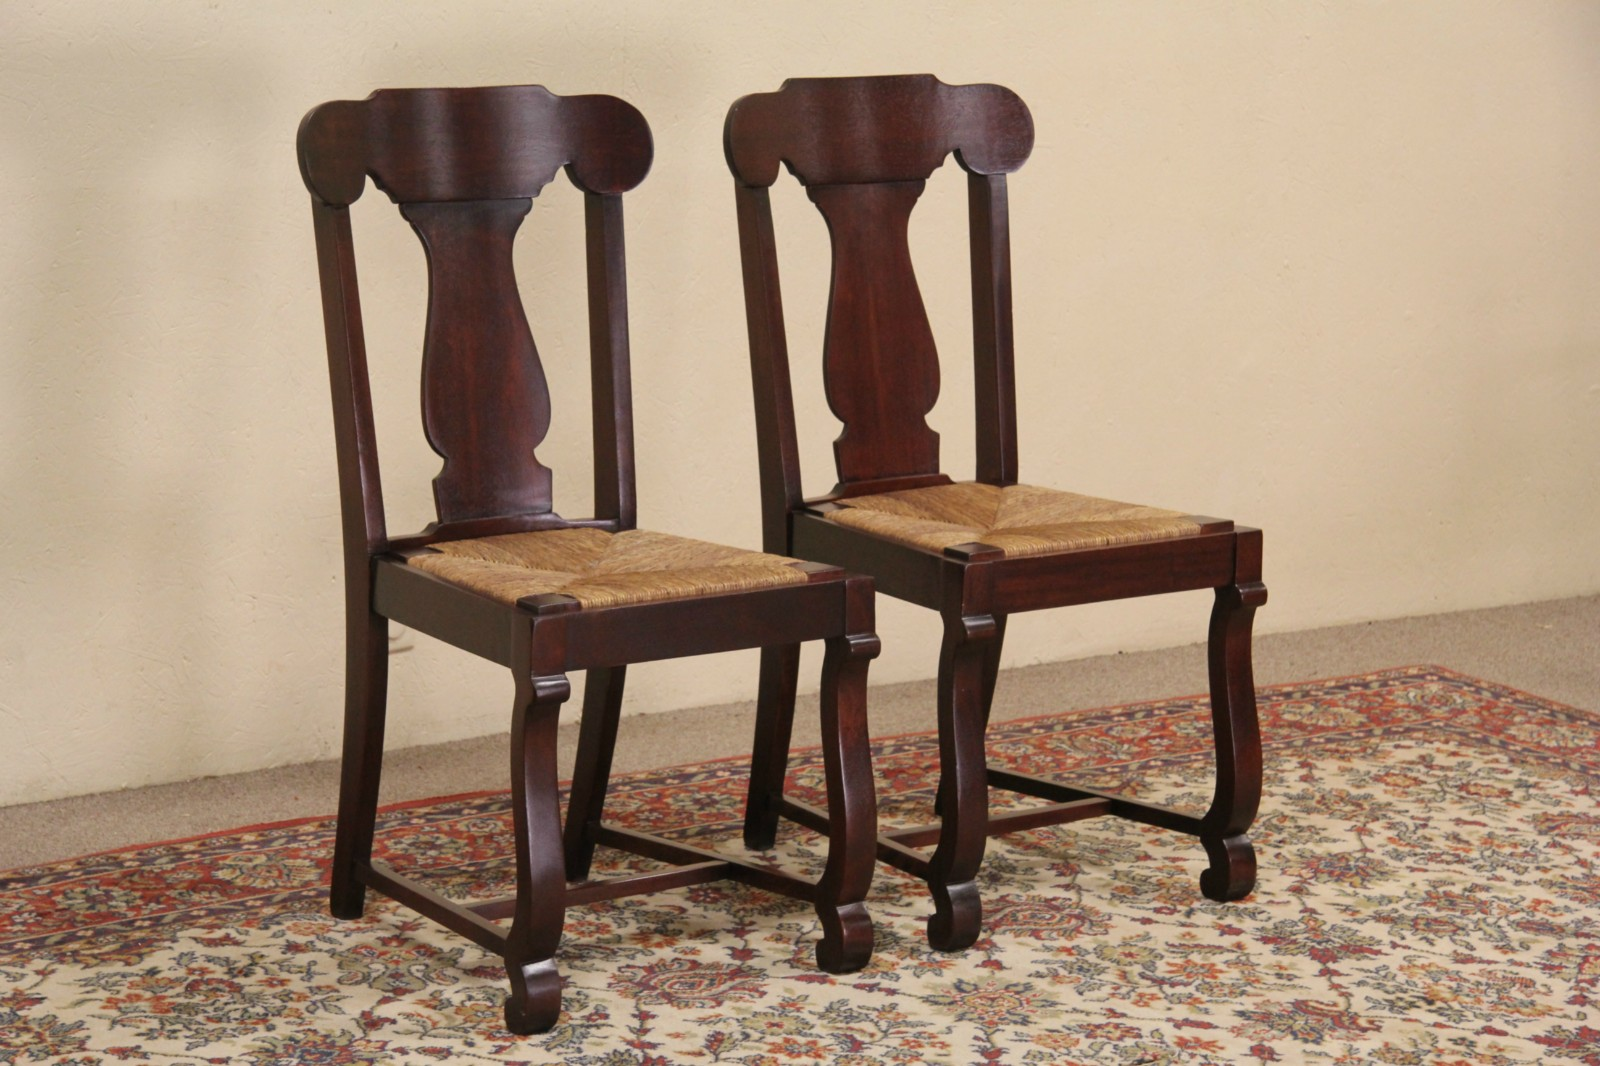 Pair Of 1910 Antique Mahogany Side Or Dining Chairs, ...